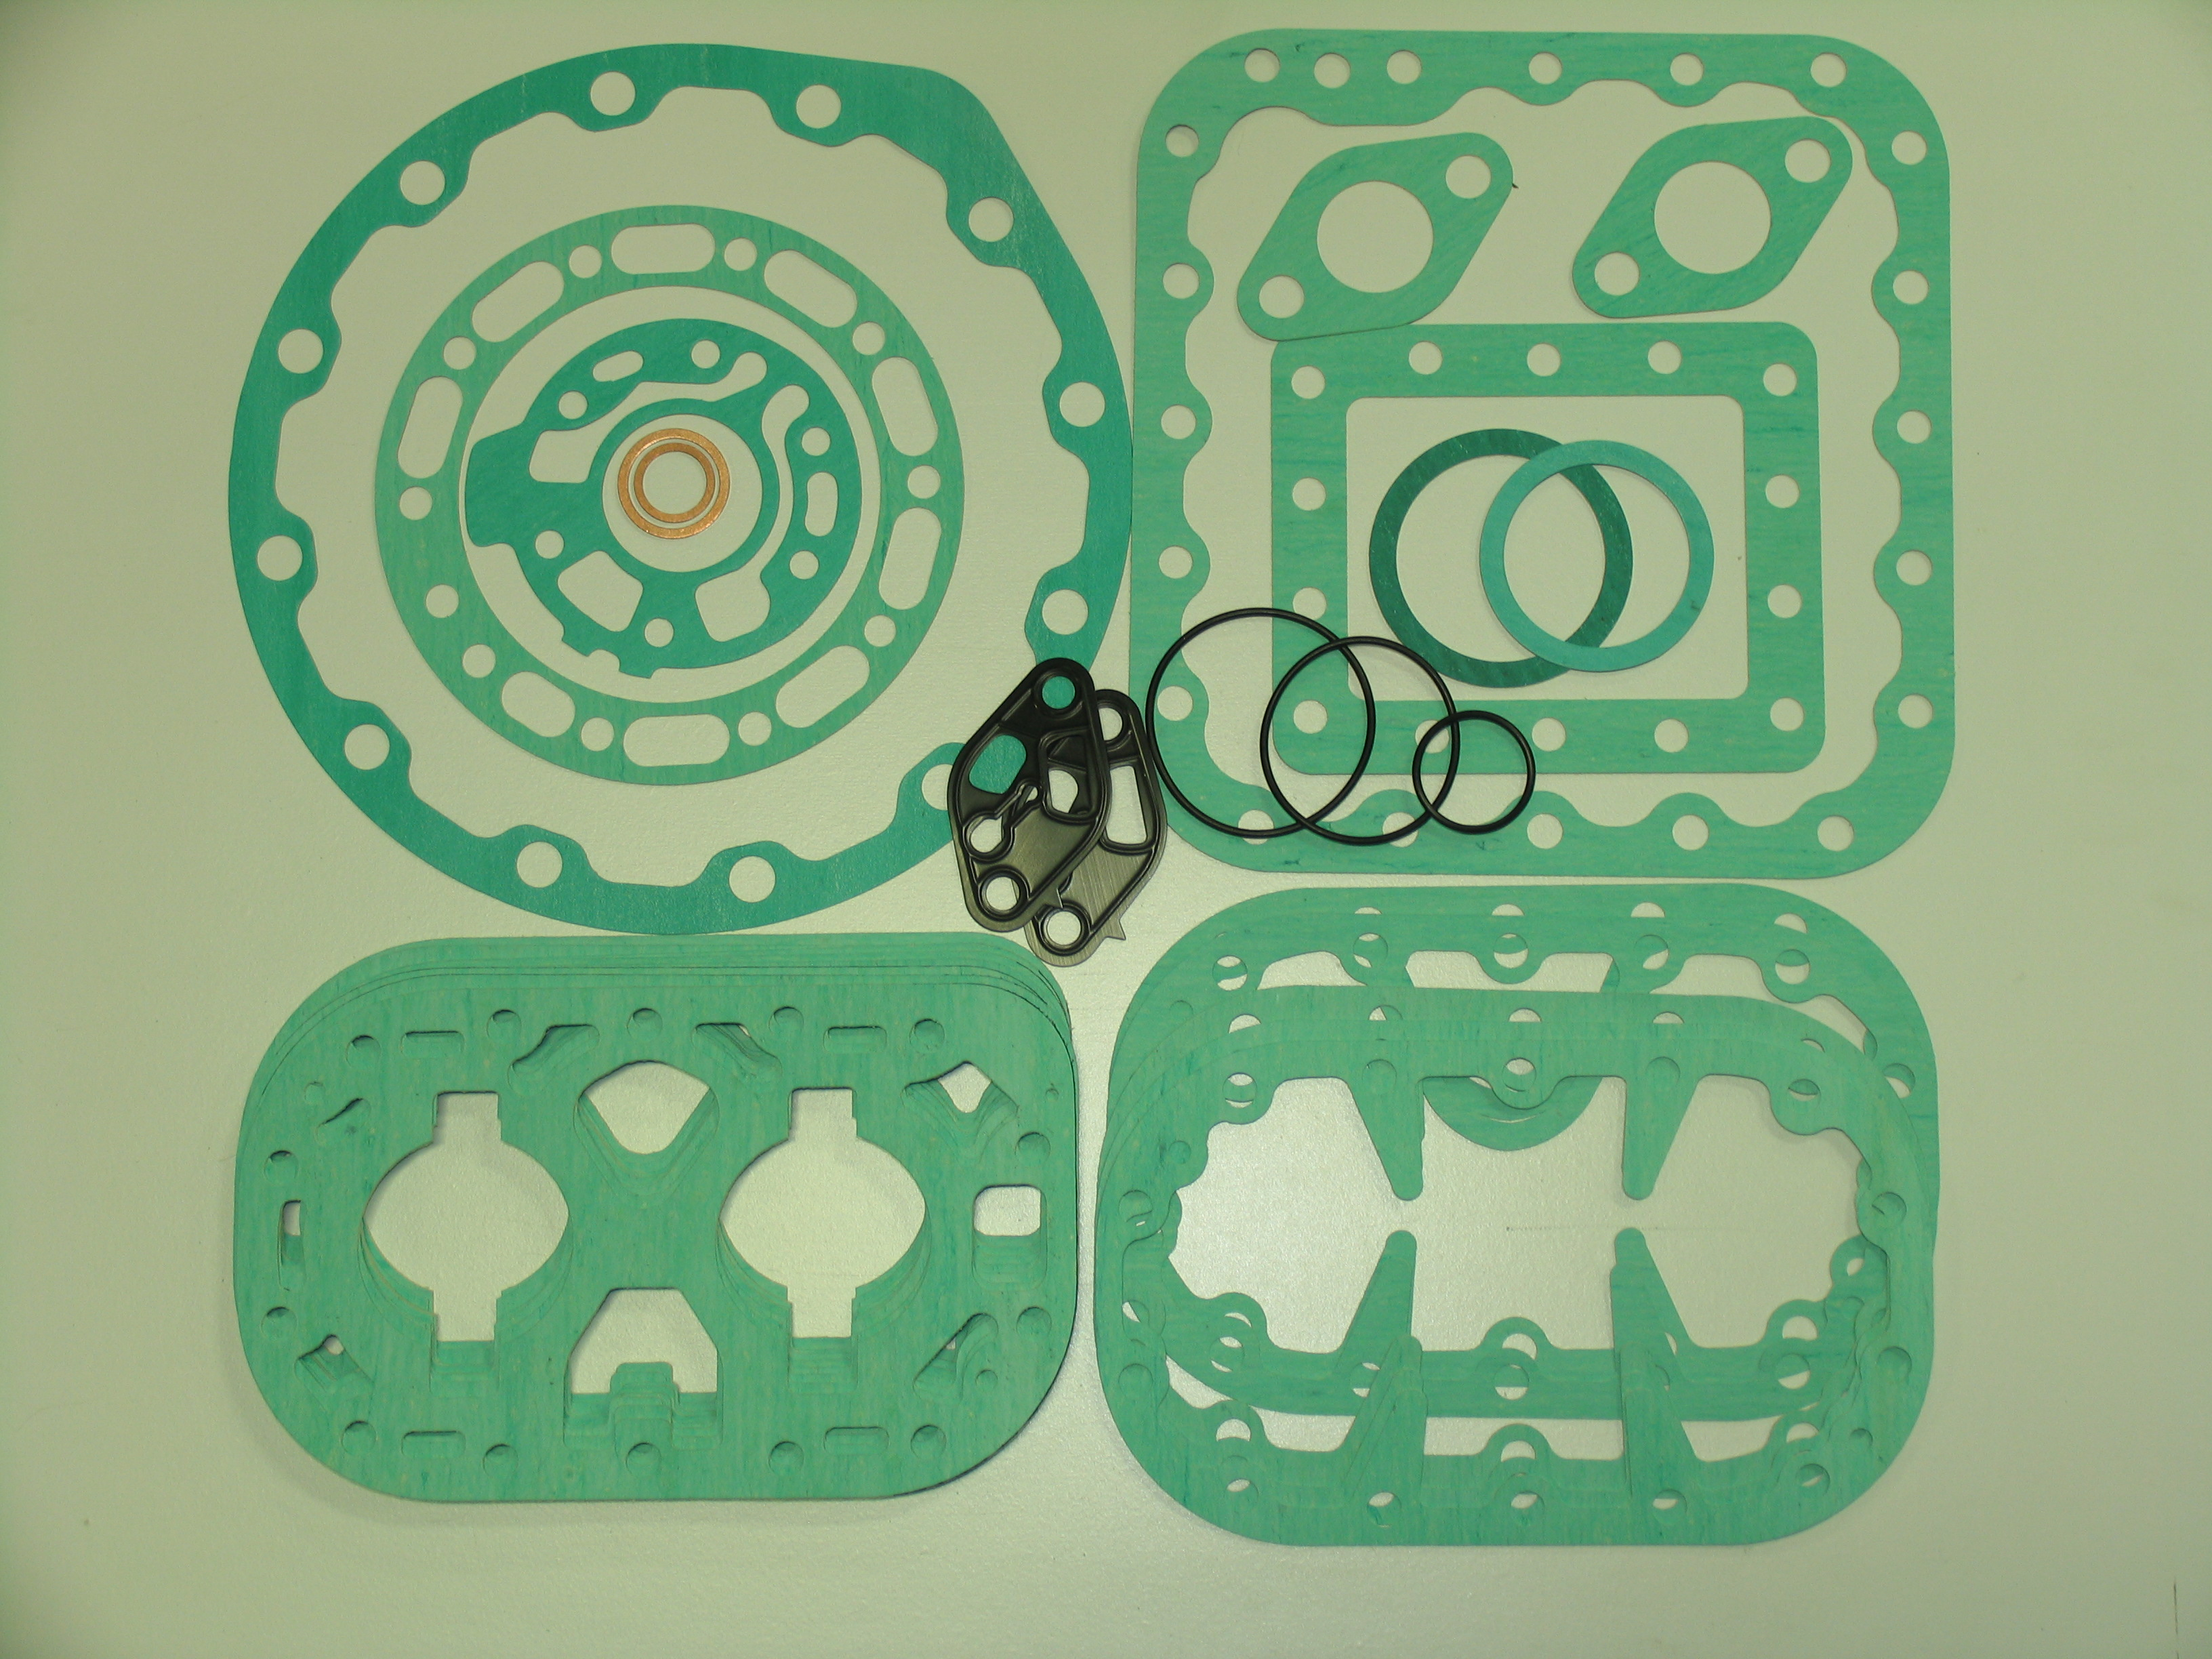 KIT-5318 Gasket Kit; R/N 998-1669-01 All 6D Modles